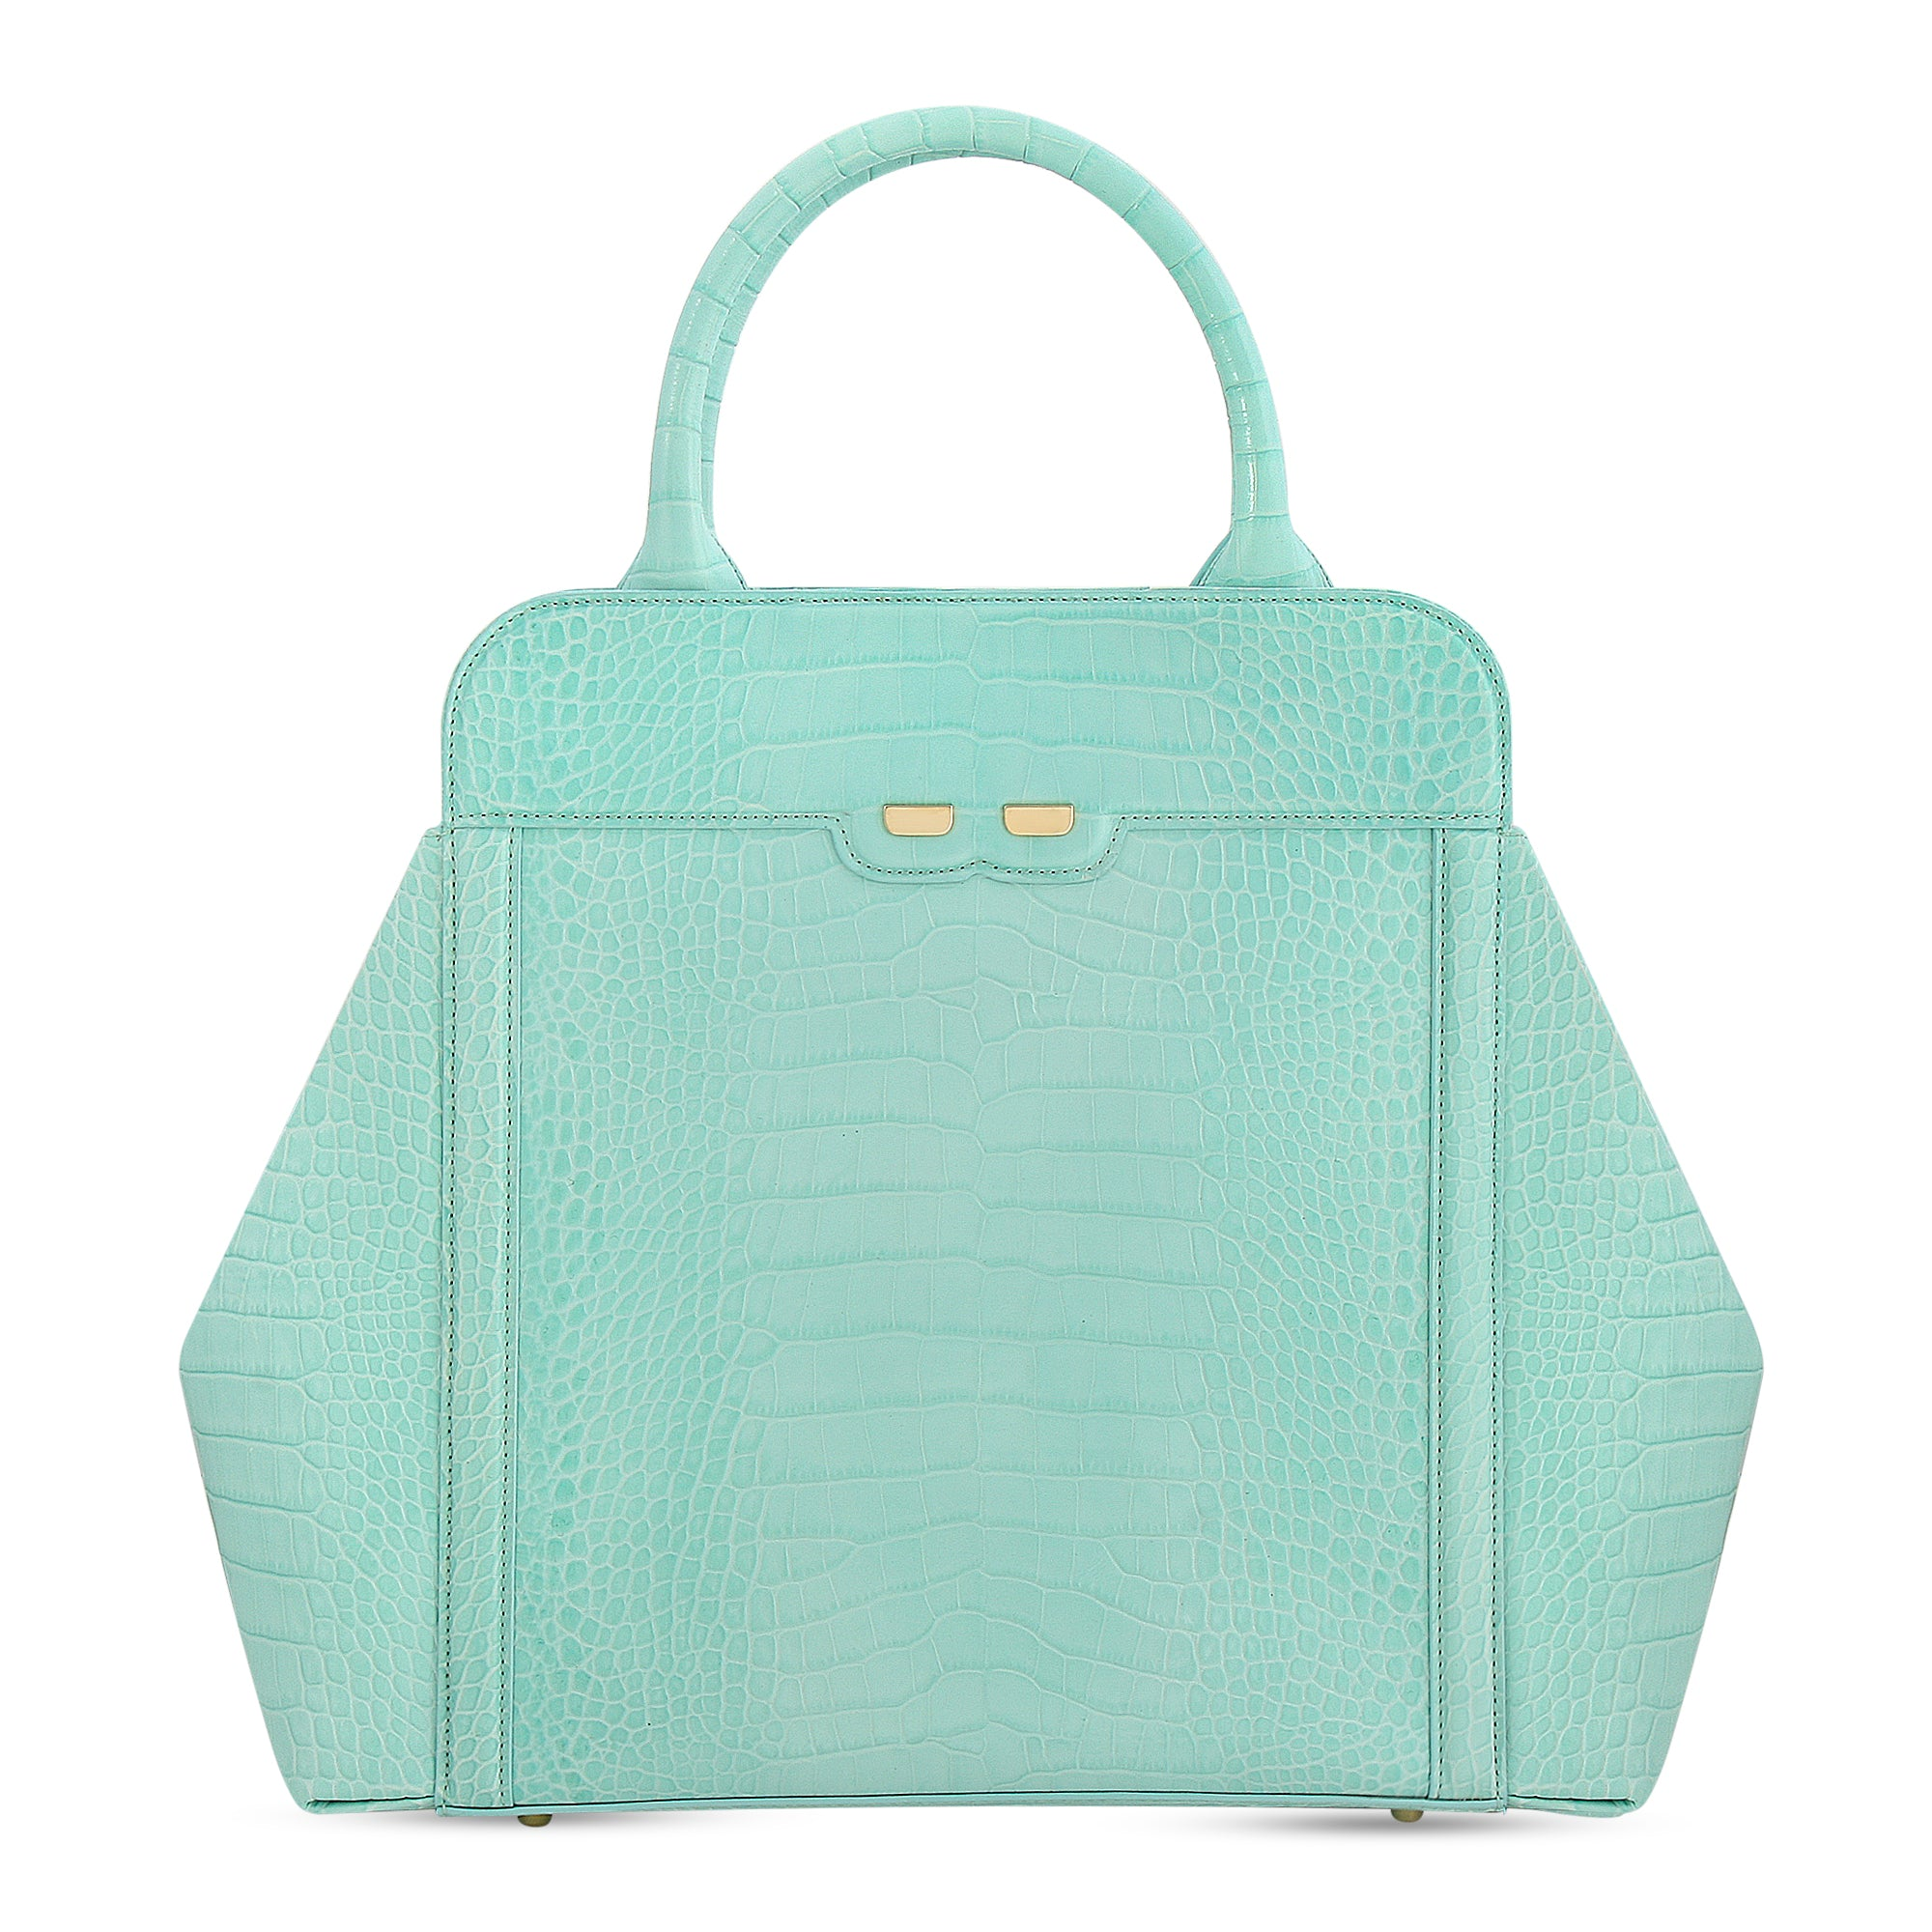 Nott in Mint Alligator Stamp - BENE Handbags